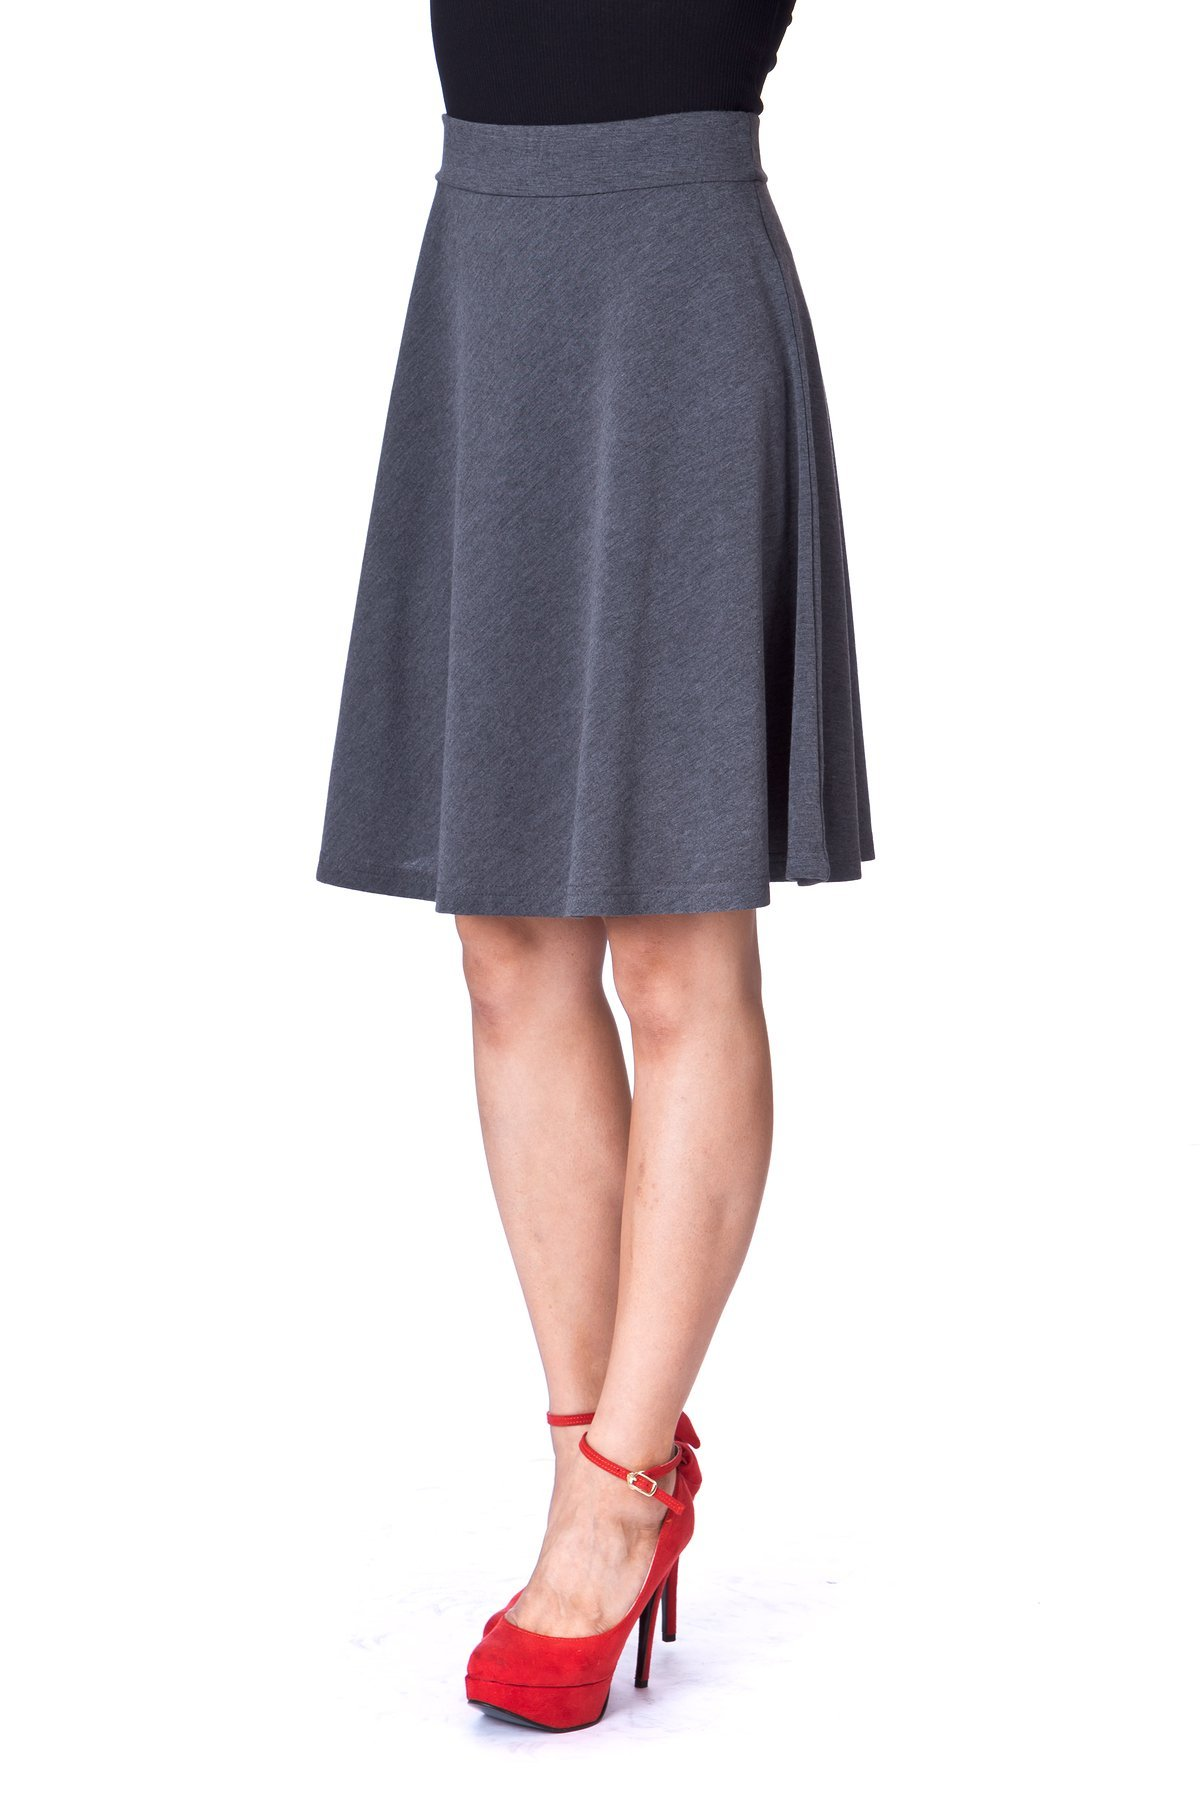 Simple Stretch A line Flared Knee Length Skirt Charcoal 5